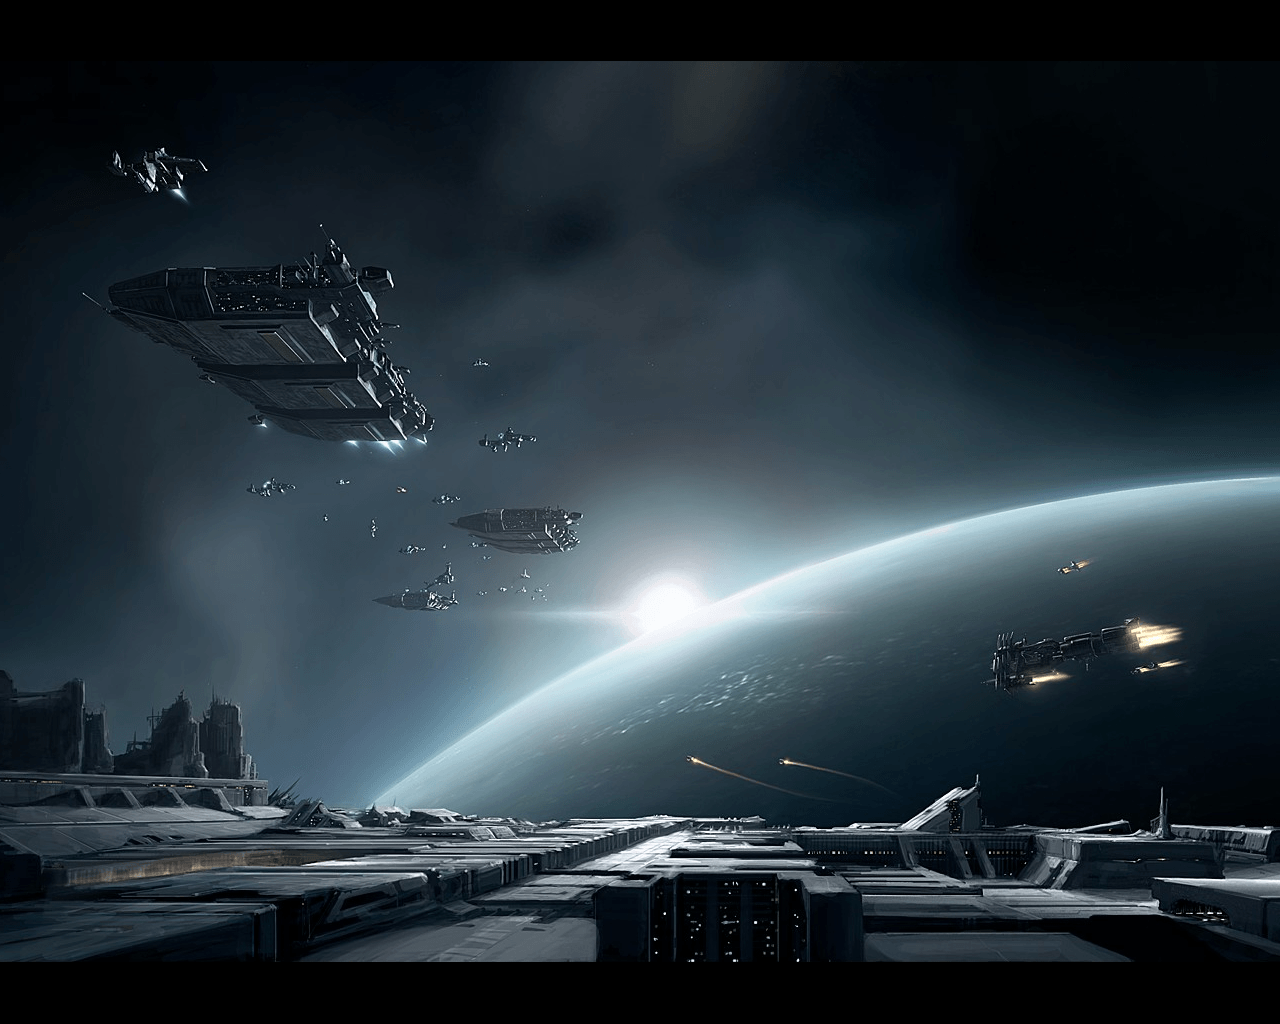 Space Ship Wallpapers 1280x1024